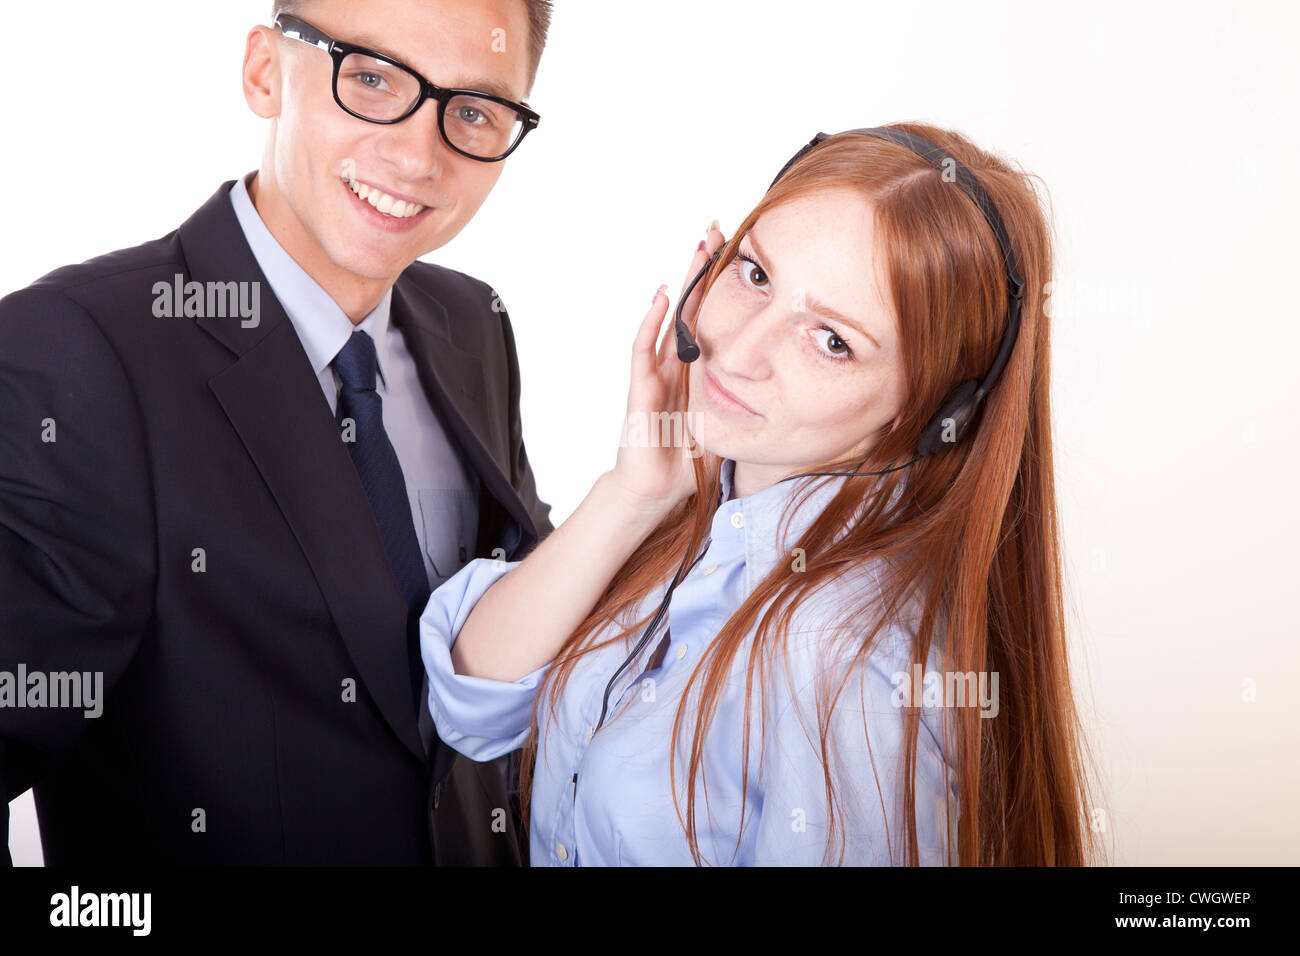 Young receptionists working and smiling. - Stock Image